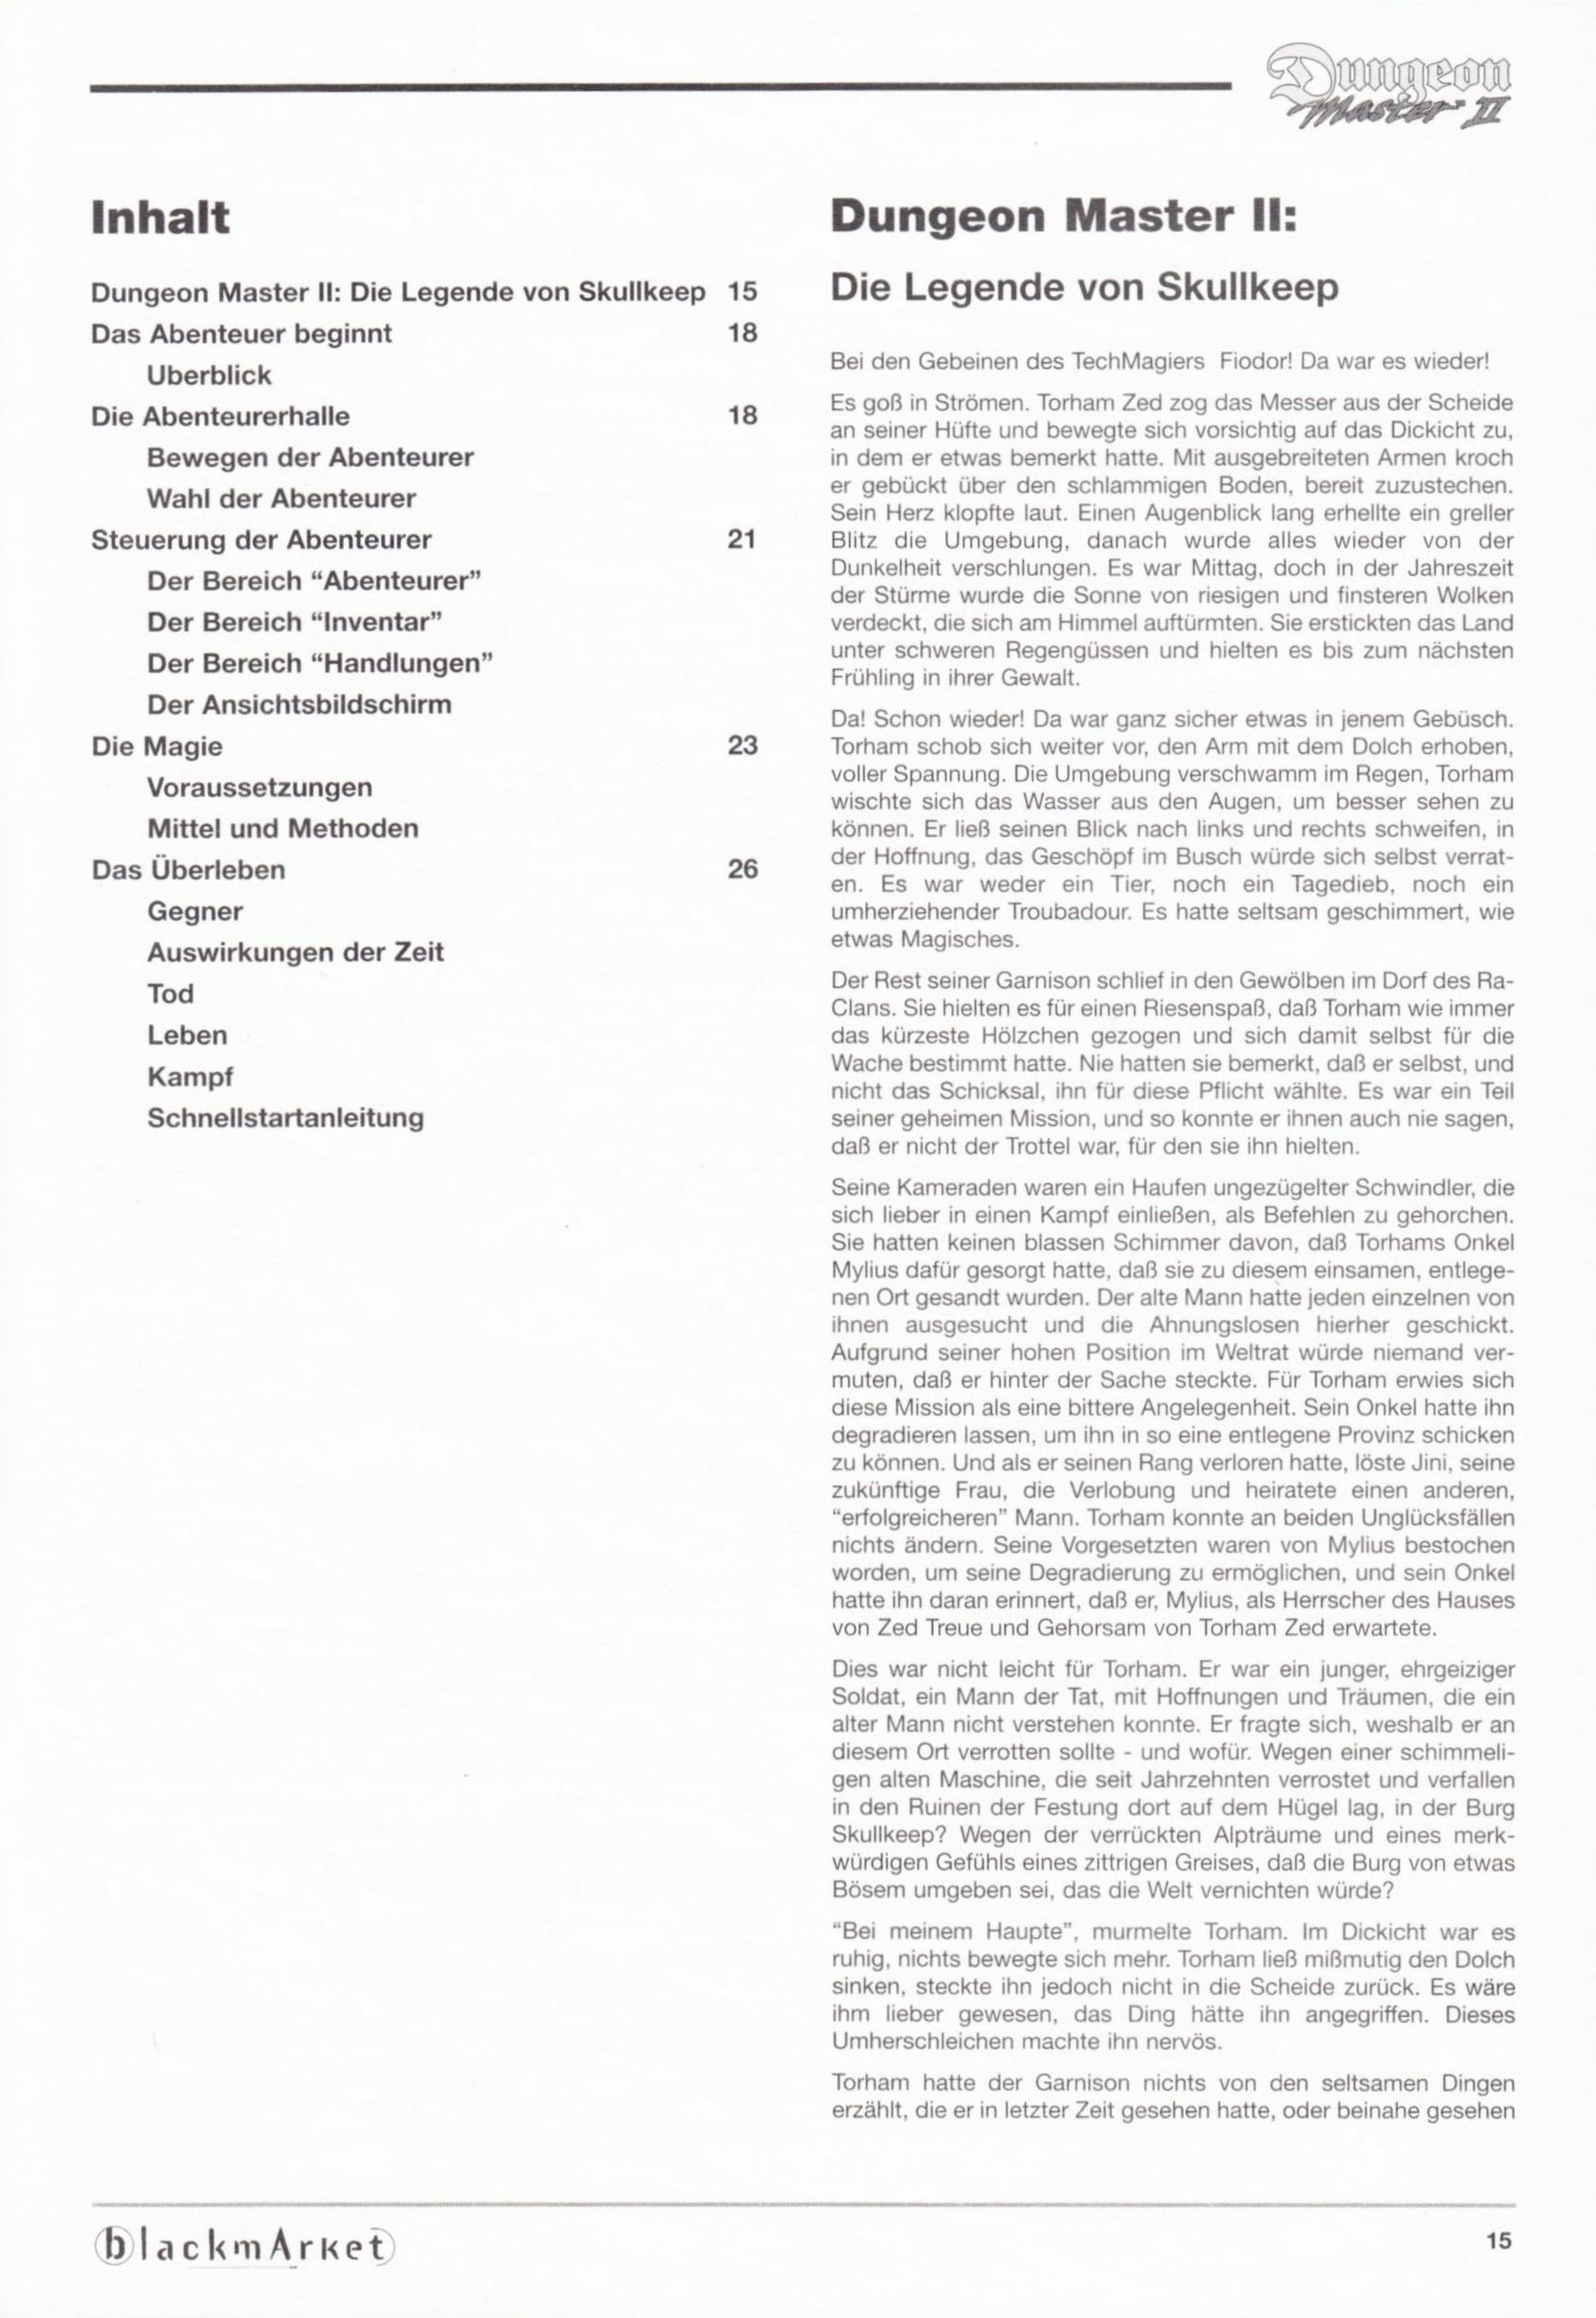 Game - Dungeon Master II - DE - PC - Blackmarket With Manual - Manual - Page 017 - Scan